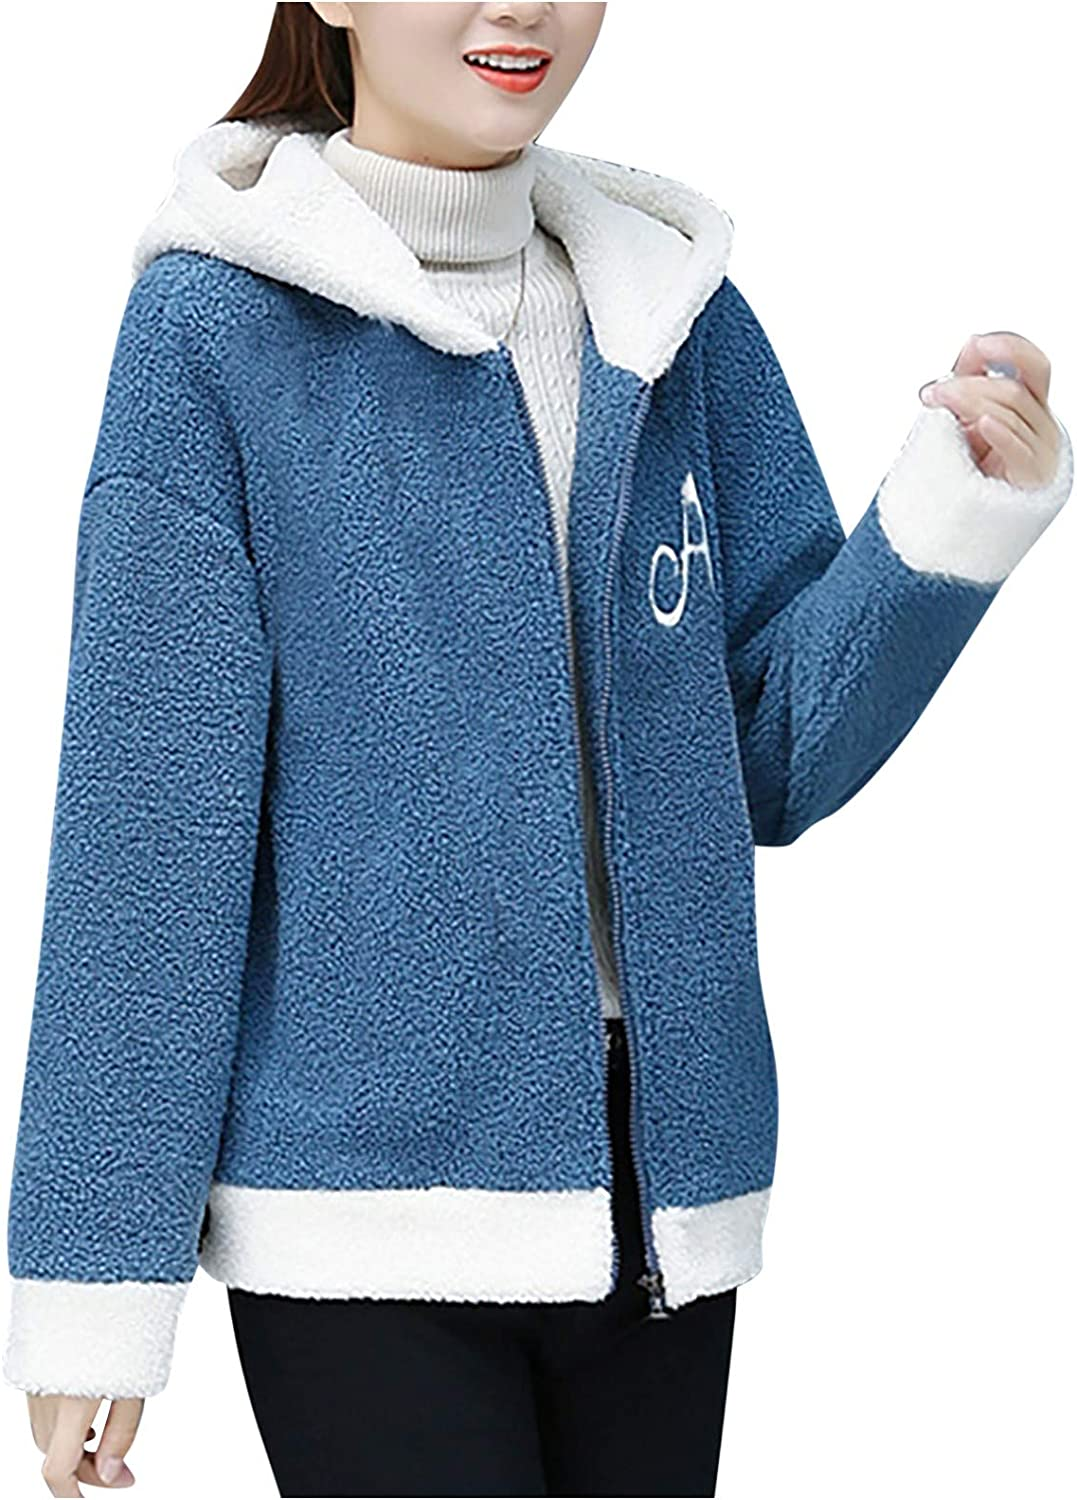 Comfy Hoodies for Women Warm Fuzzy Fleece Color Block Hooded Coat Casual Full-Zip Letter Outwear with Pockets